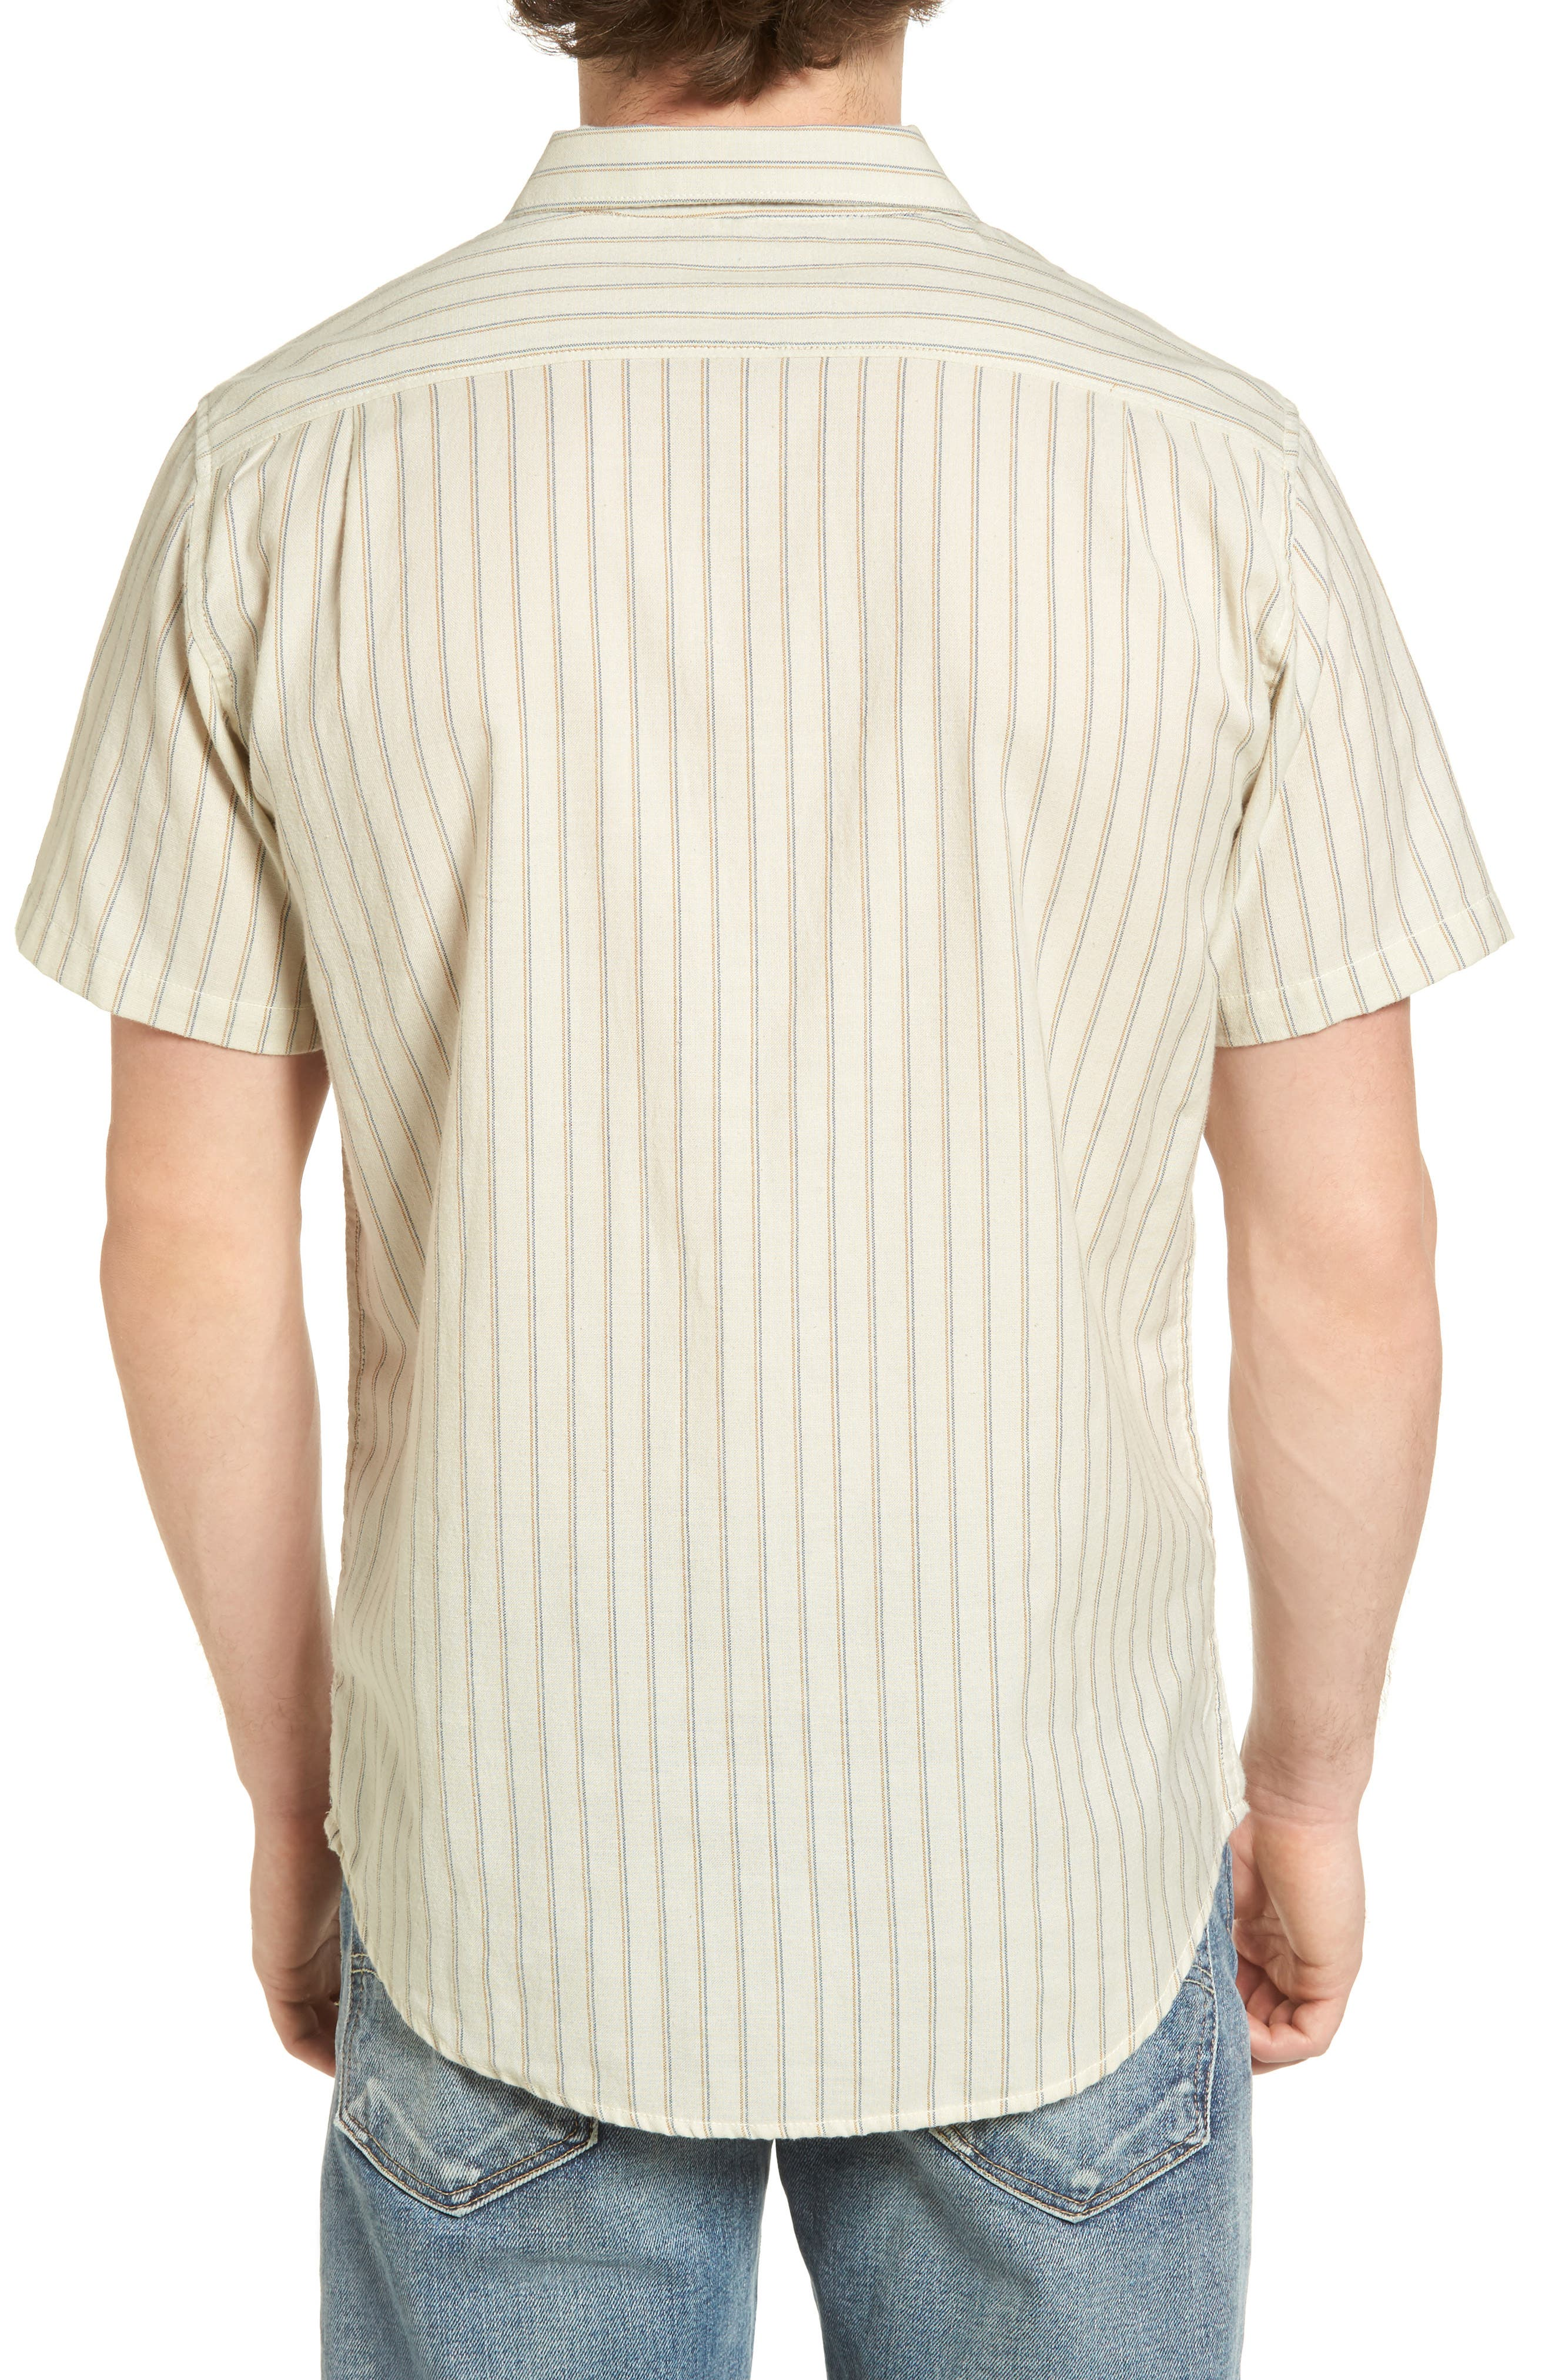 Kelso Tailored Fit Stripe Shirt,                             Alternate thumbnail 2, color,                             061